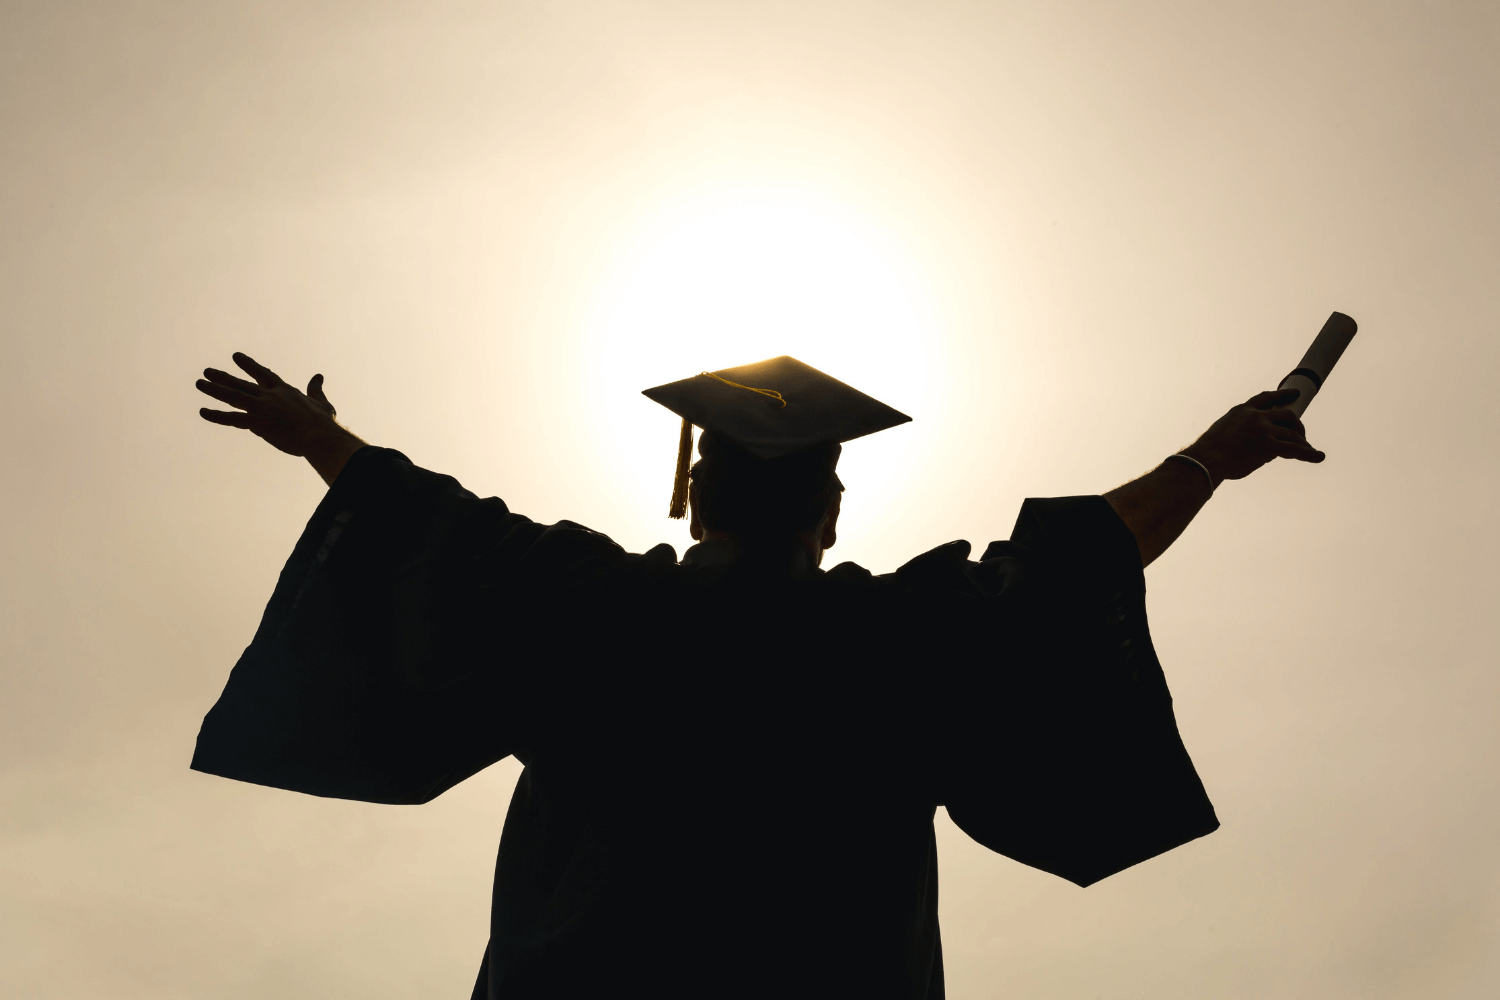 Graduate holding their arms up like a bird with degree in hand looking at the sun